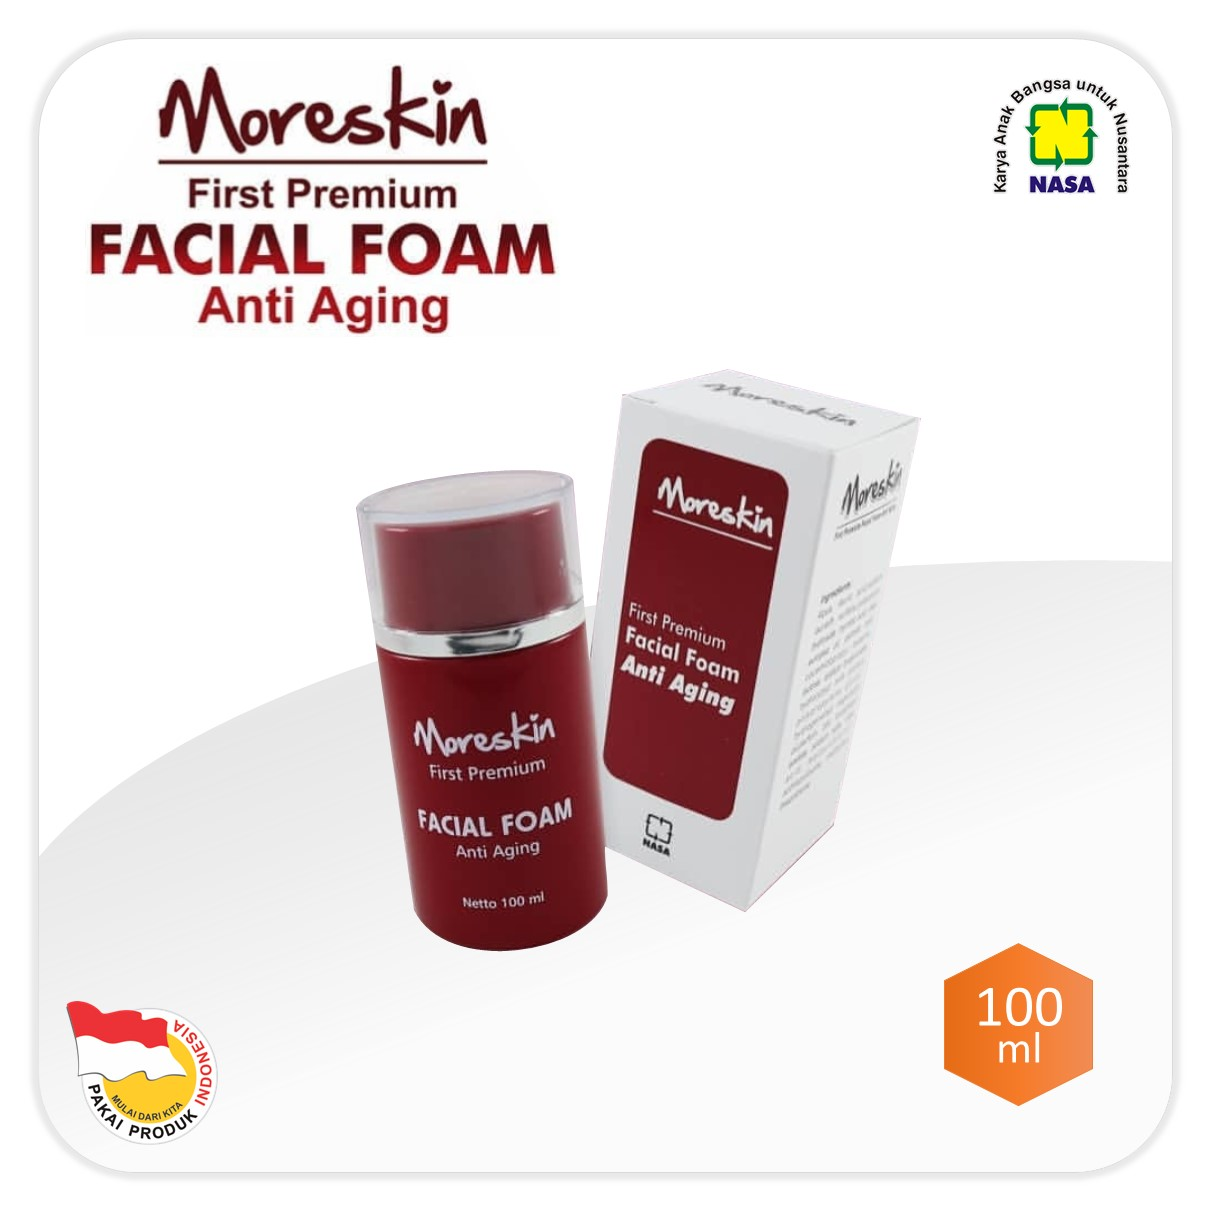 Moreskin Premium Facial Foam Anti Aging NASA